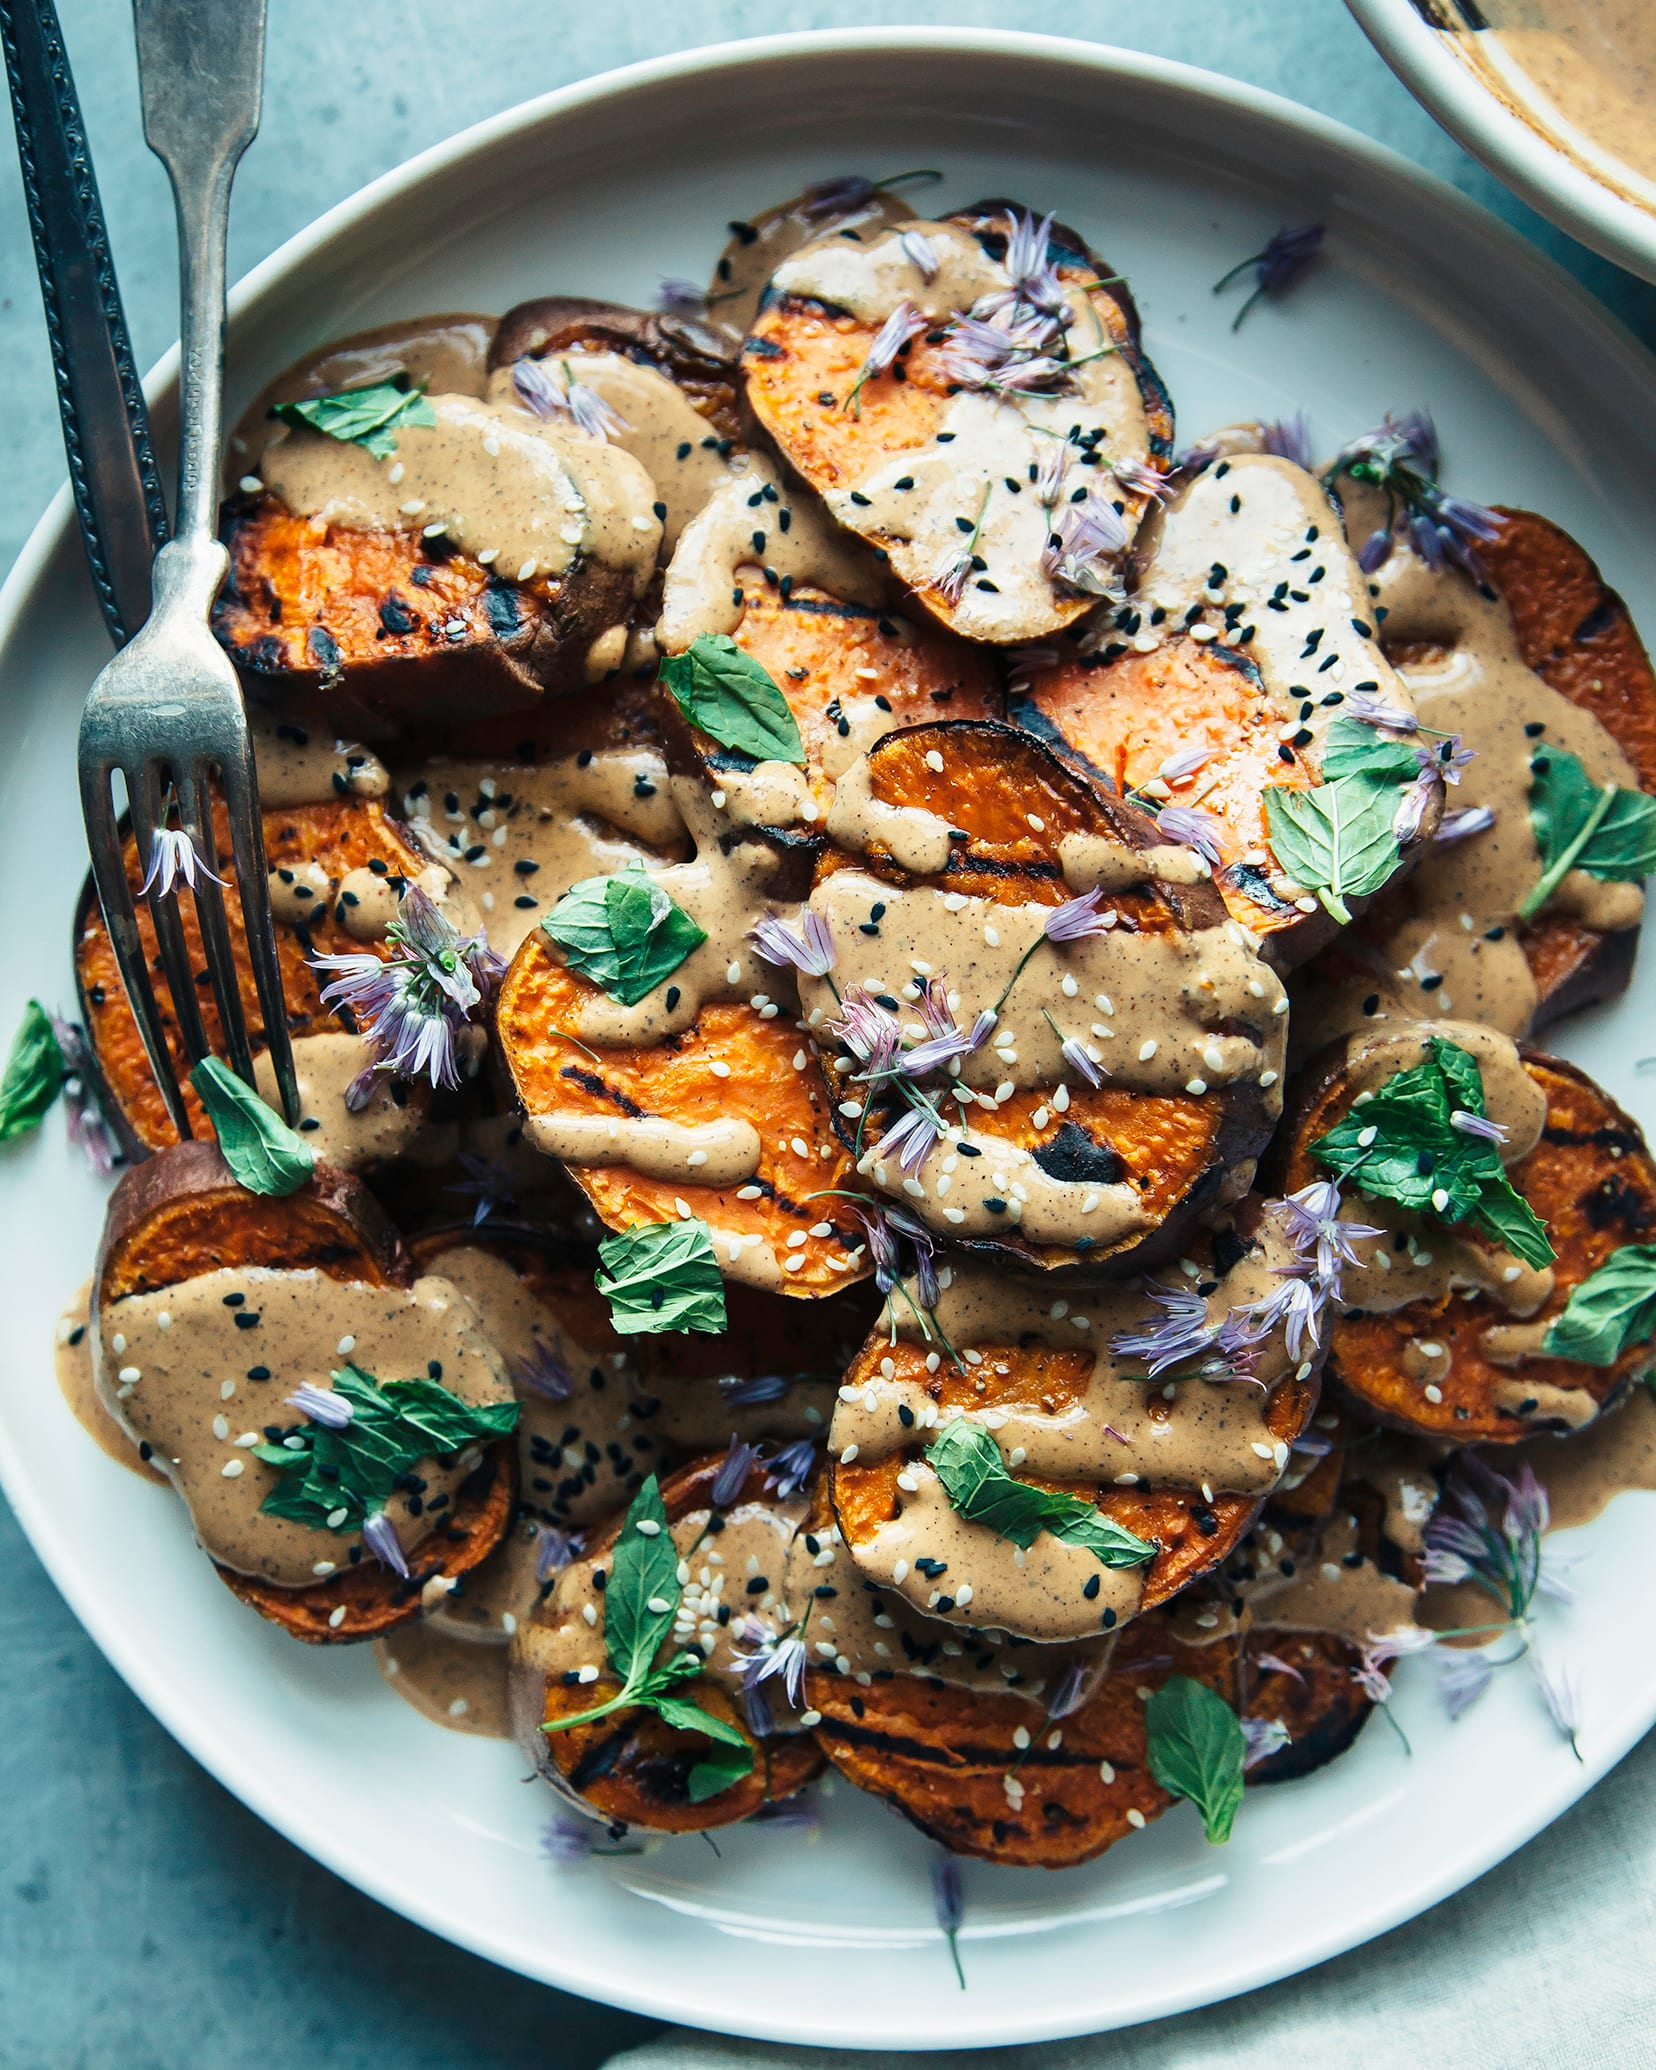 Overhead shot of grilled sweet potatoes with Chile lime tahini sauce.